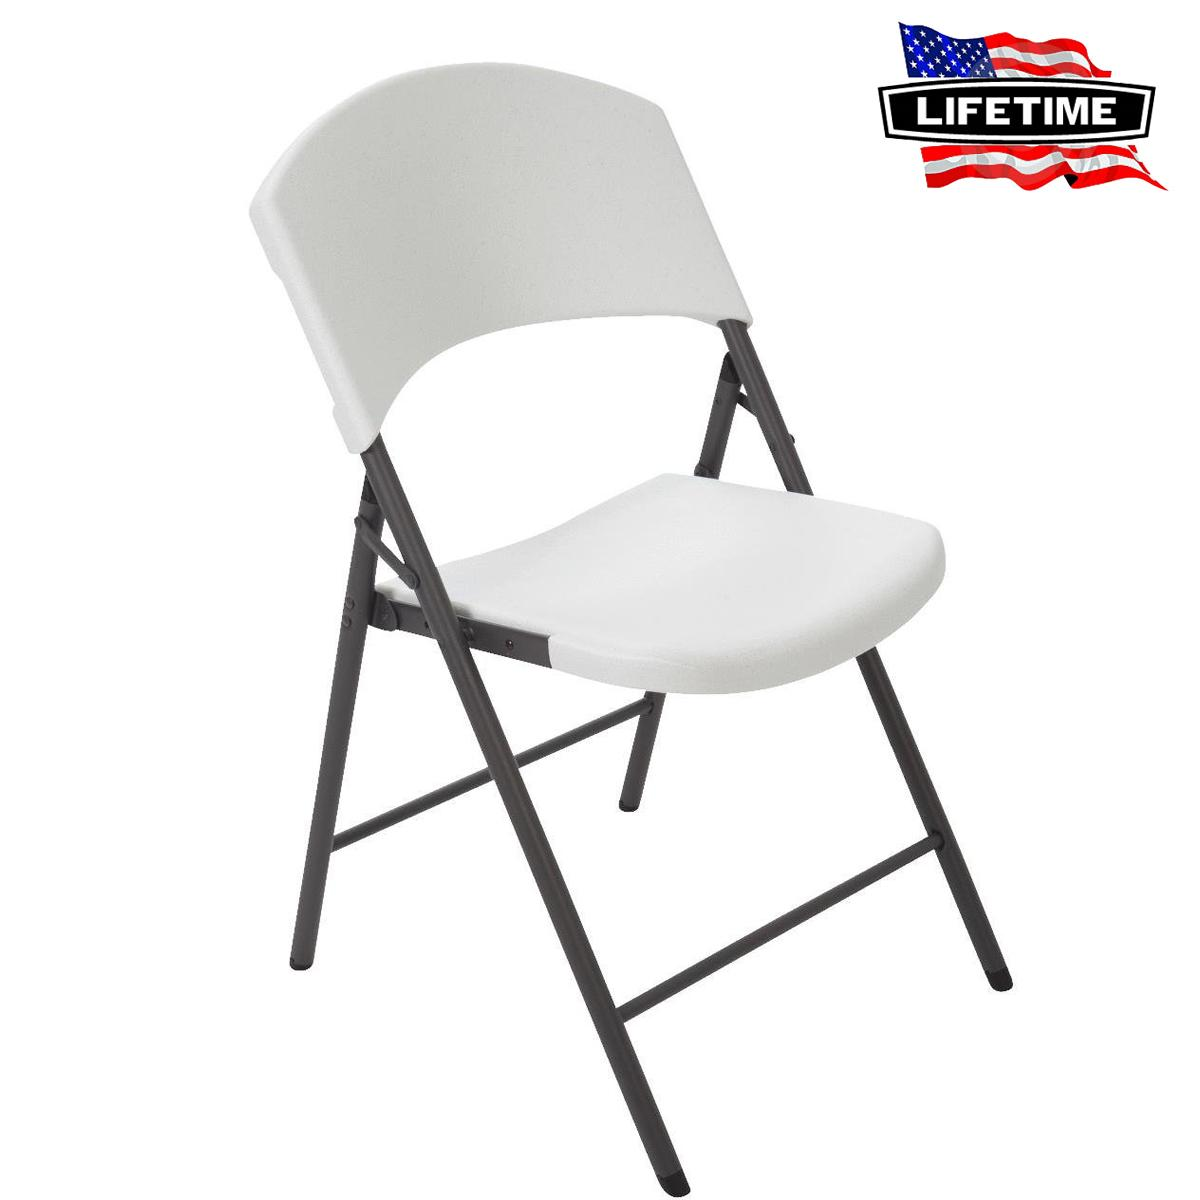 lifetime chairs and tables foldable adirondack chair products philippines price list folding white